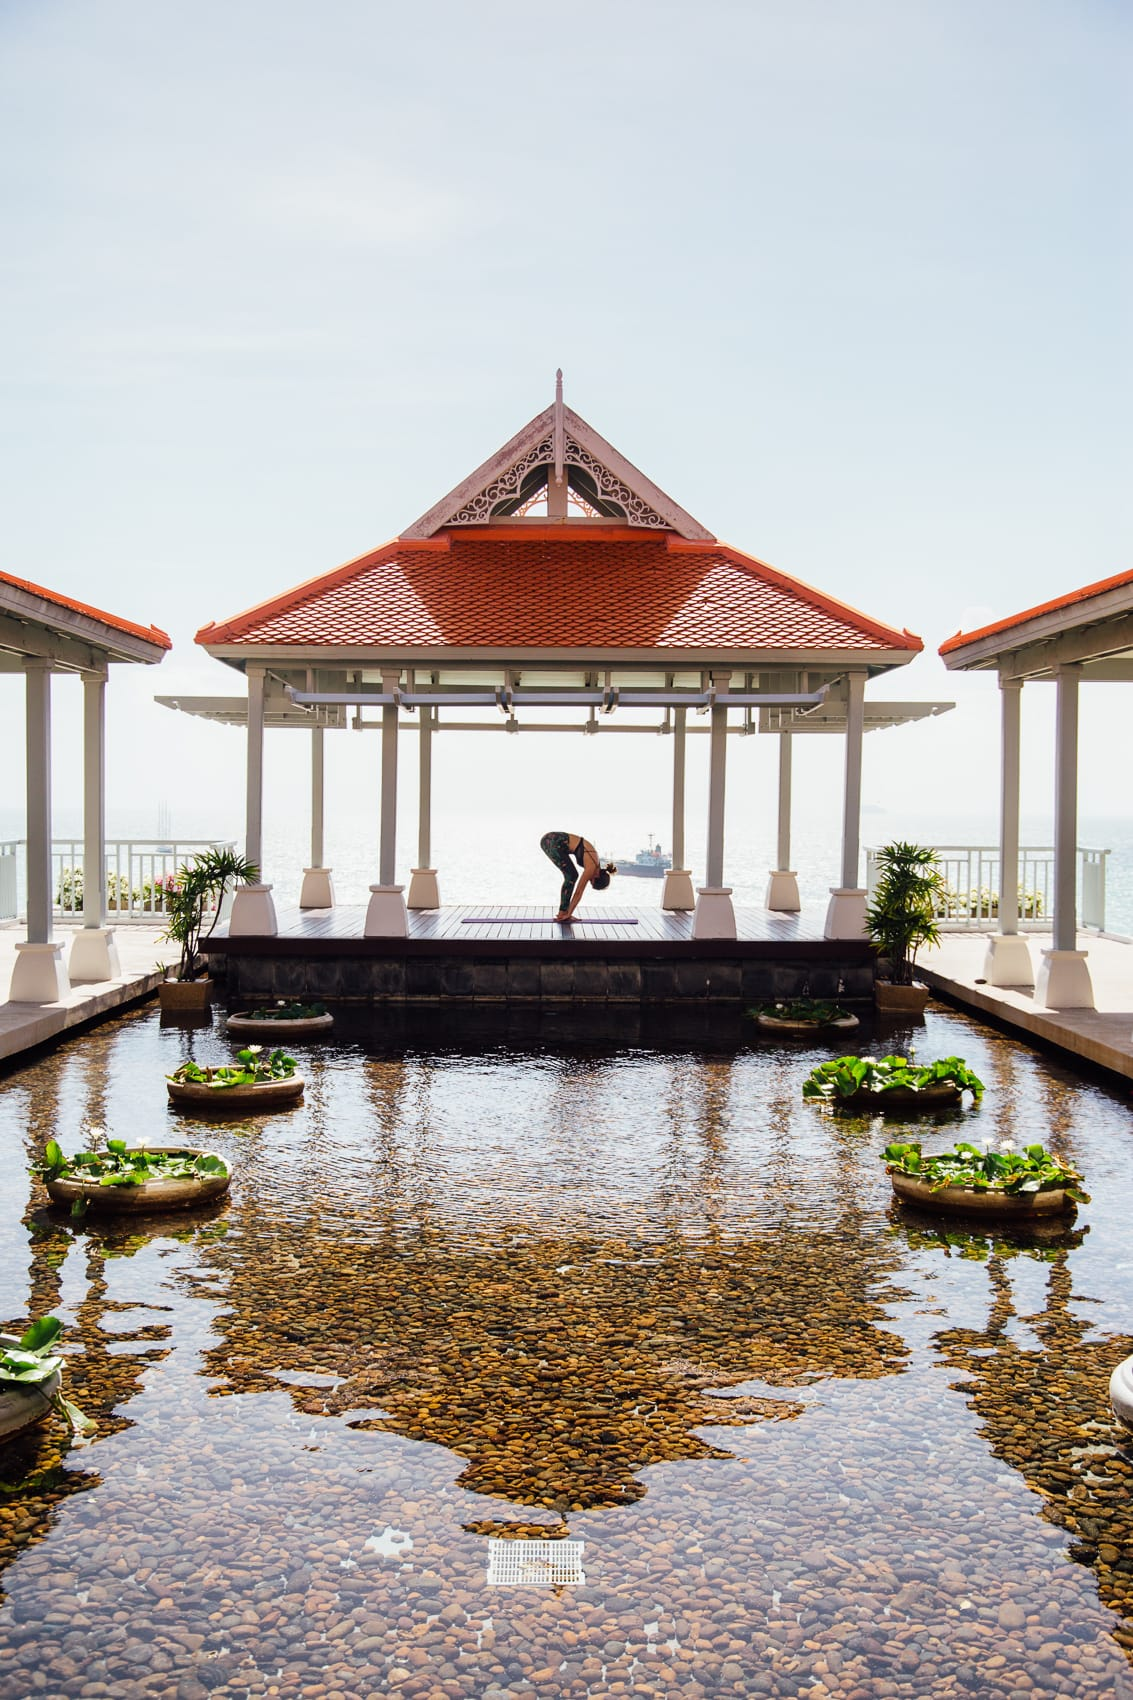 Thailand - Amatara Wellness Resort auf Phuket/ Panwa Beach